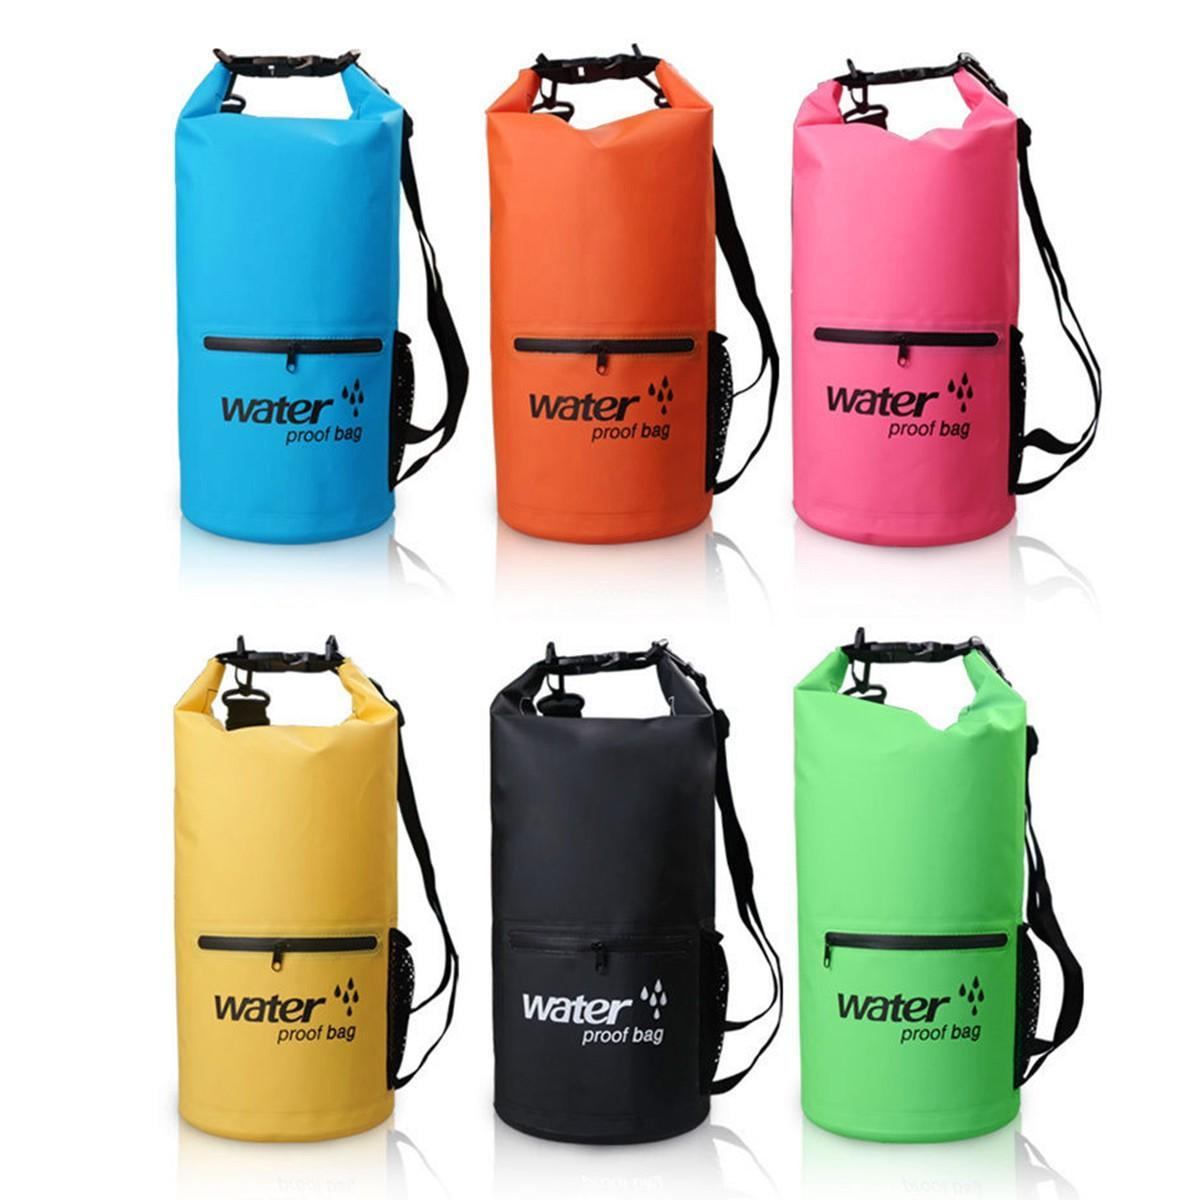 ba9bea16cbda 20L Sport Waterproof Dry Bag Backpack Pouch Floating Boating Kayaking  Camping  Buy Online at Best Prices in Pakistan